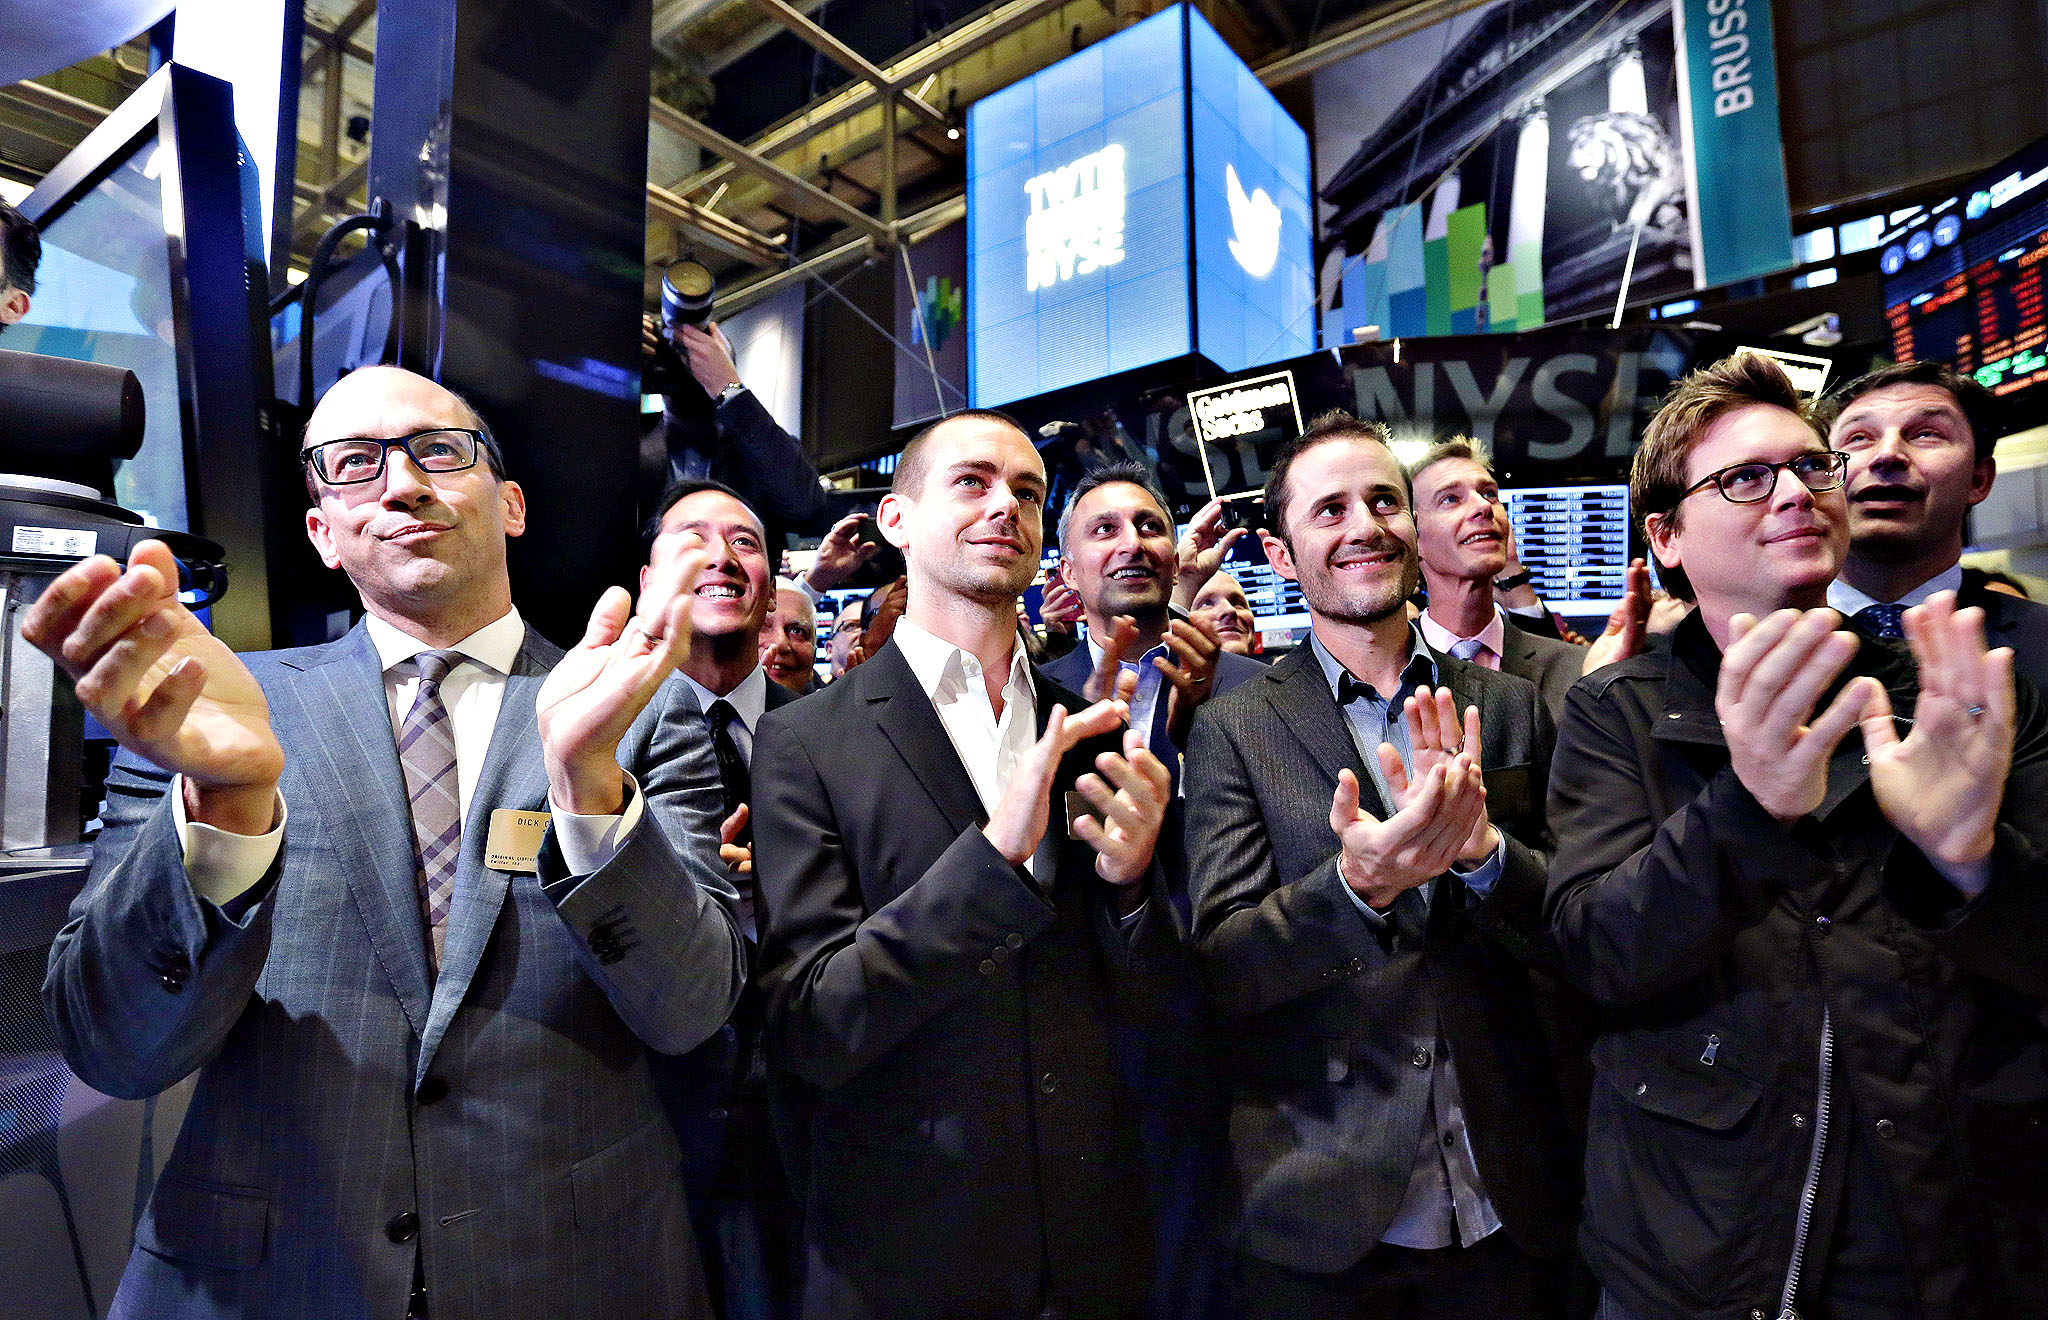 Dick Costolo, Jack Dorsey, Evan Williams, Biz Stone...Twitter CEO Dick Costolo, Chairman and co-founder Jack Dorsey, and co-founders Evan Williams and Biz Stone, front row left to right, applaud as they watch the the New York Stock Exchange opening bell rung, Thursday, Nov. 7, 2013.  If Twitter's bankers and executives were hoping for a surge on the day of the stock's public debut, they got it. The stock opened at $45.10 a share on its first day of trading, 73 percent above its initial offering price.